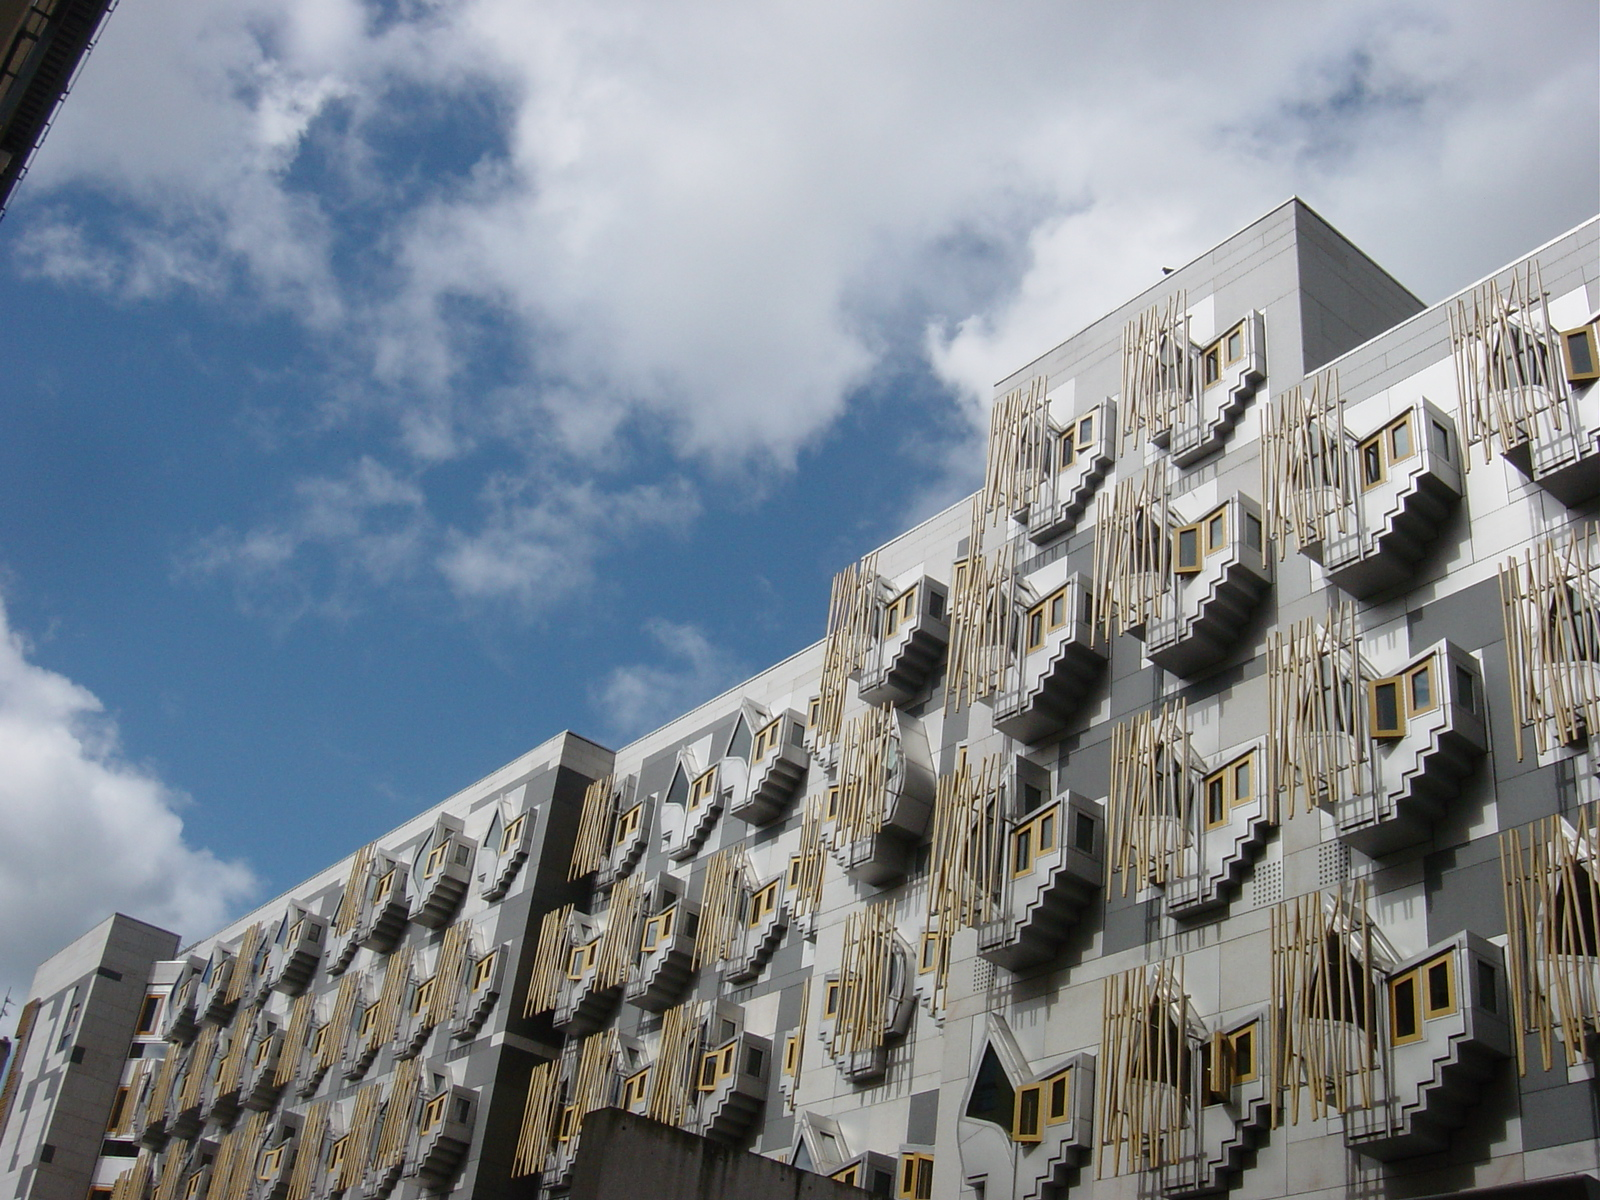 Scottish Parliament Building, Edinburgh (Enric Miralles)